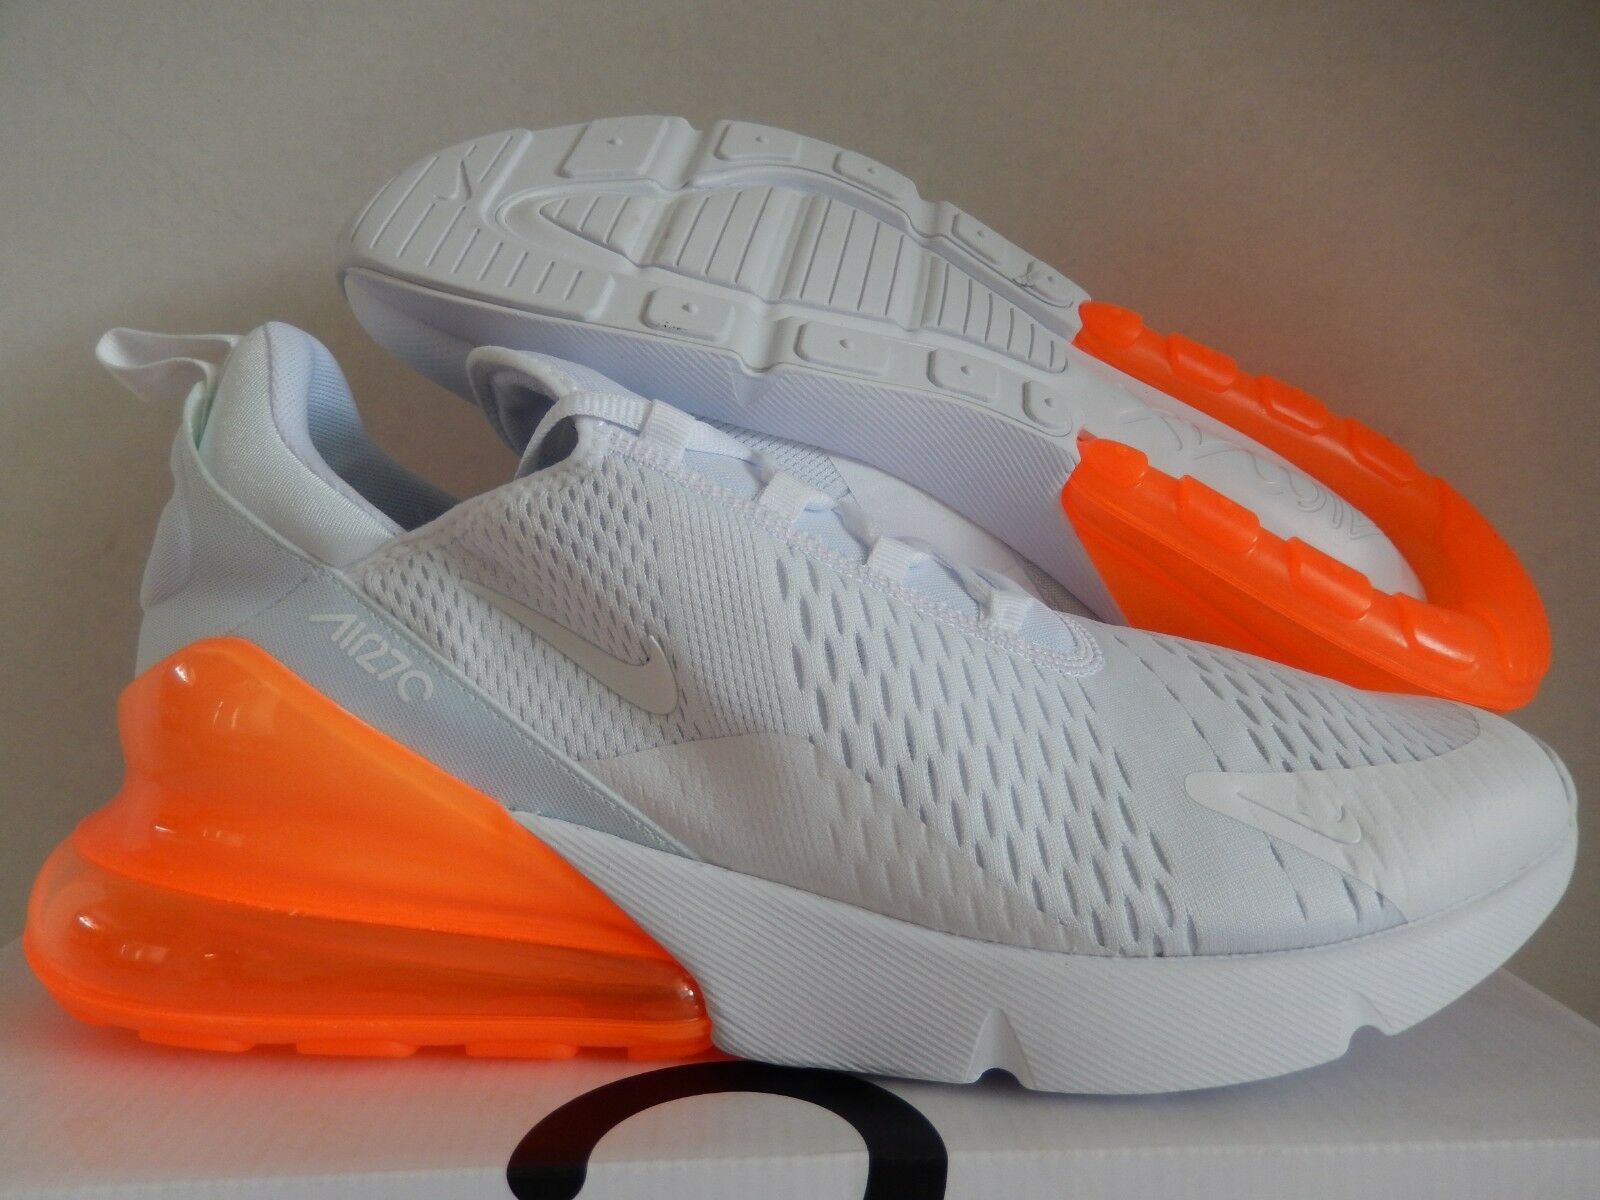 NIKE AIR MAX 270 Blanc-Blanc-TOTAL ORANGE SZ 15 [AH8050-102]